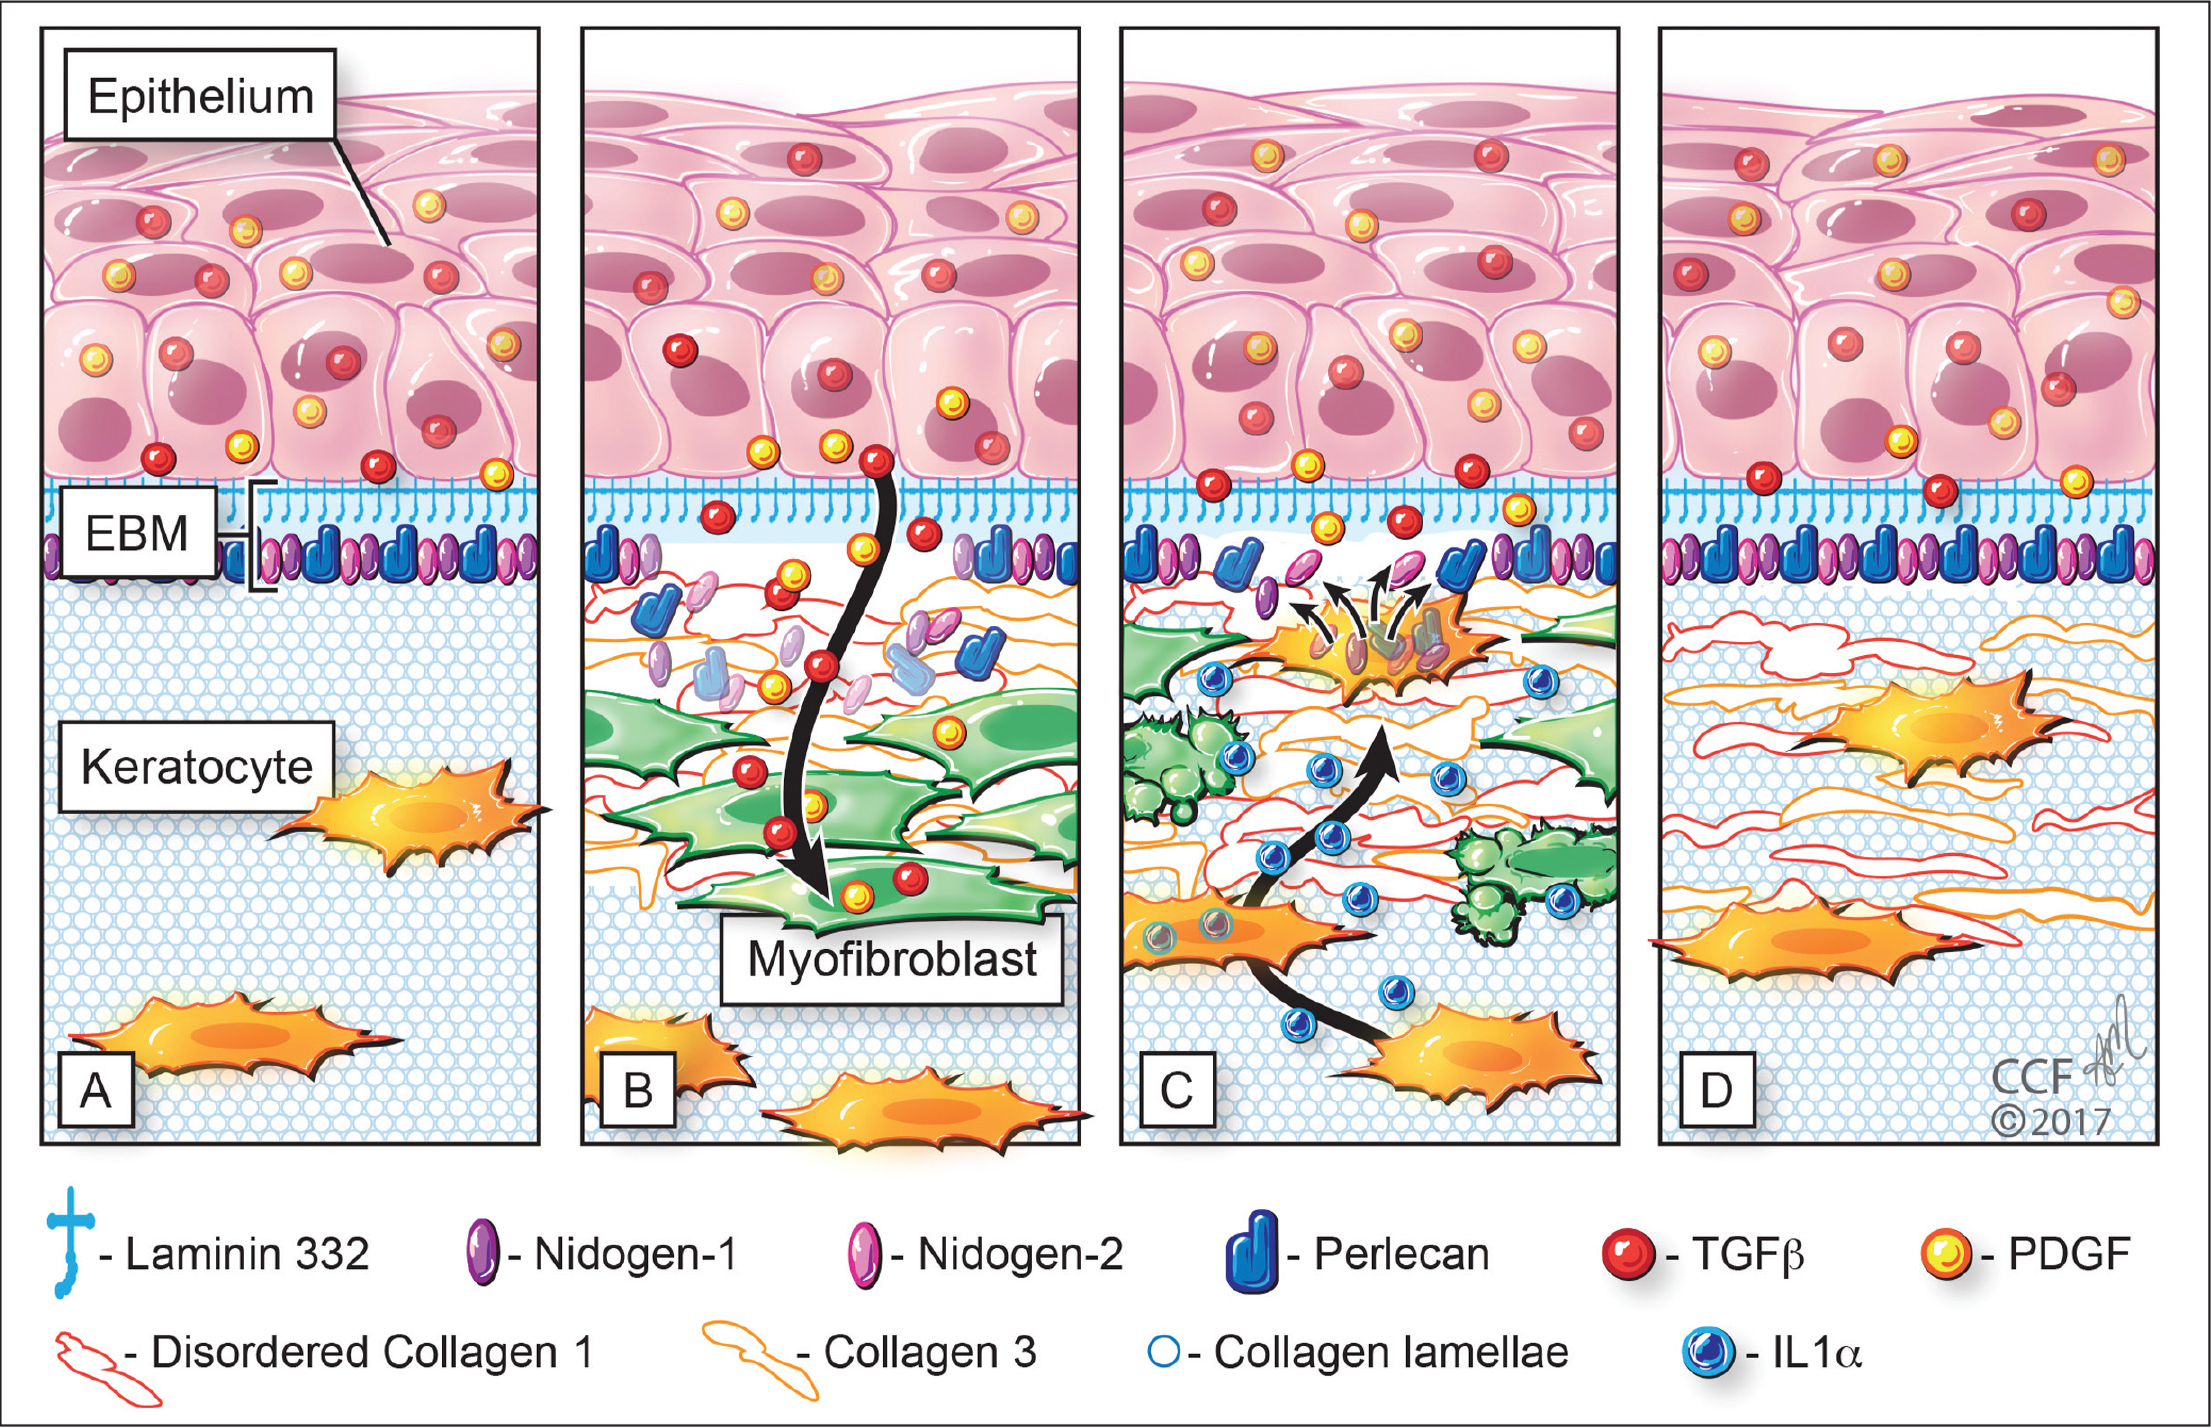 Schematic illustration showing injury to the corneal epithelial basement membrane (EBM) and defective regeneration leading to myofibroblast development and fibrosis, followed by keratocyte contributions to regeneration of the EBM and removal of fibrotic extracellular matrix produced by myofibroblasts. (A) The normal unwounded cornea has intact EBM composed of laminin 332, nidogen-1, nidogen-2, perlecan, and other components not depicted—such as collagen type IV. The underlying stroma has keratocytes that maintain the highly organized stromal collagen lamellae and cornea transparency. Epithelium-derived transforming growth factor beta (TGF-β) and platelet-derived growth factor (PDGF) are blocked from penetration into the underlying stroma by binding to normal EBM components such as perlecan and collagen type IV. (B) After severe epithelial-stromal injuries, such as infections, trauma, and surgeries (eg, high correction photorefractive keratectomy), the epithelium and EBM are disrupted and activated TGF-β and PDGF penetrate into the underlying stroma at sufficient concentrations to drive the development of mature myofibroblasts from keratocyte-derived and bone marrow–derived (fibrocyte) precursor cells. Myofibroblasts are also opaque (relative to keratocytes) and secrete large amounts of disordered collagen type I, collagen type III, and other matrix materials that disrupt the organization of the normal stromal lamellae to produce corneal scarring (fibrosis). (C) Over months to years following the initial injury, keratocytes penetrate the anterior stromal myofibroblast layer and facilitate EBM regeneration via the production of laminins, nidogens, and perlecan in coordination with overlying epithelial cells that also produce these and other EBM components. The working hypothesis is that once the nascent laminin-332 layer is produced by the epithelium, more posterior EBM components must come from keratocytes to fully regenerate the normal EBM. This causes a decrease in